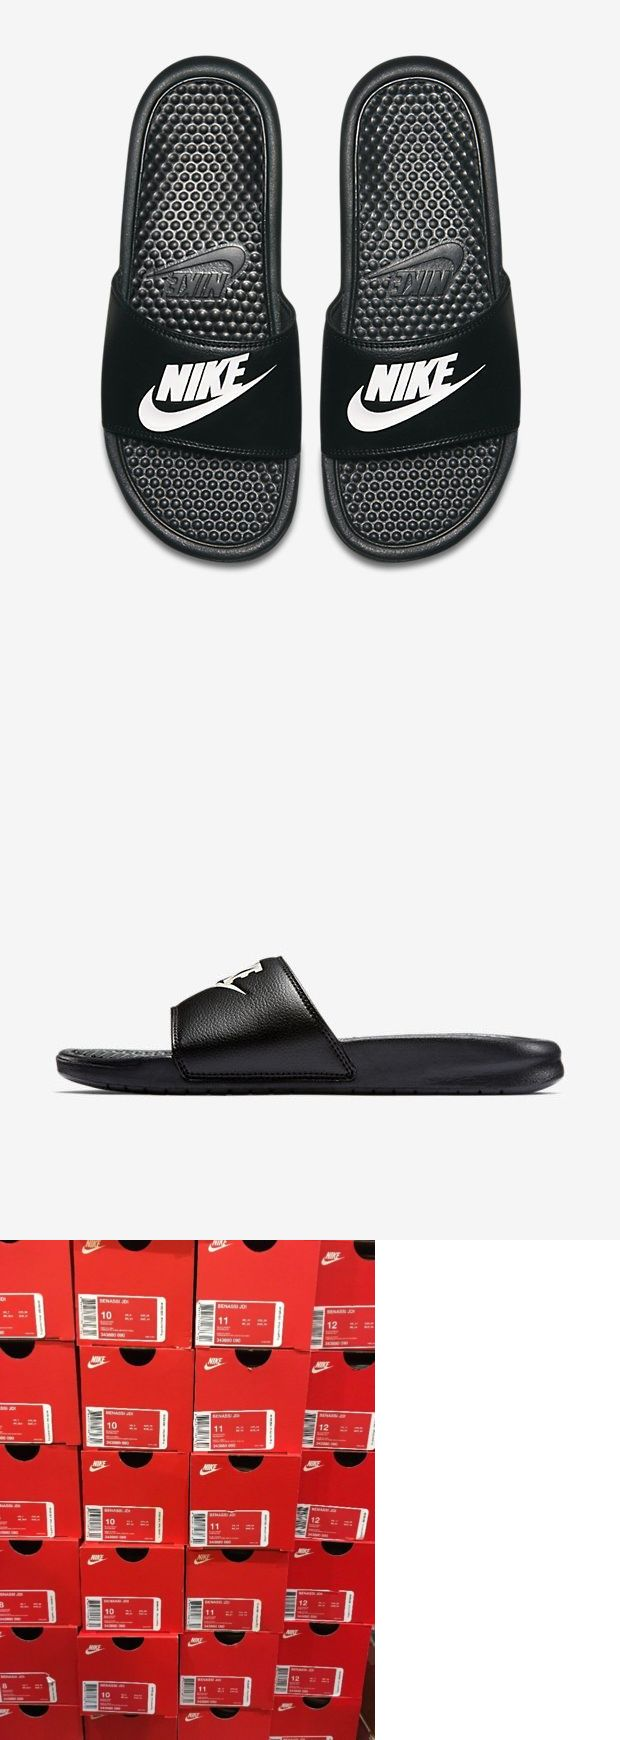 3ff832877e7b34 Sandals 11504  Nwt Nike Benassi Jdi Black White Men S Slides Slide 8 9 10  11 12 Flip Flop -  BUY IT NOW ONLY   23 on  eBay  sandals  benassi  black   white ...